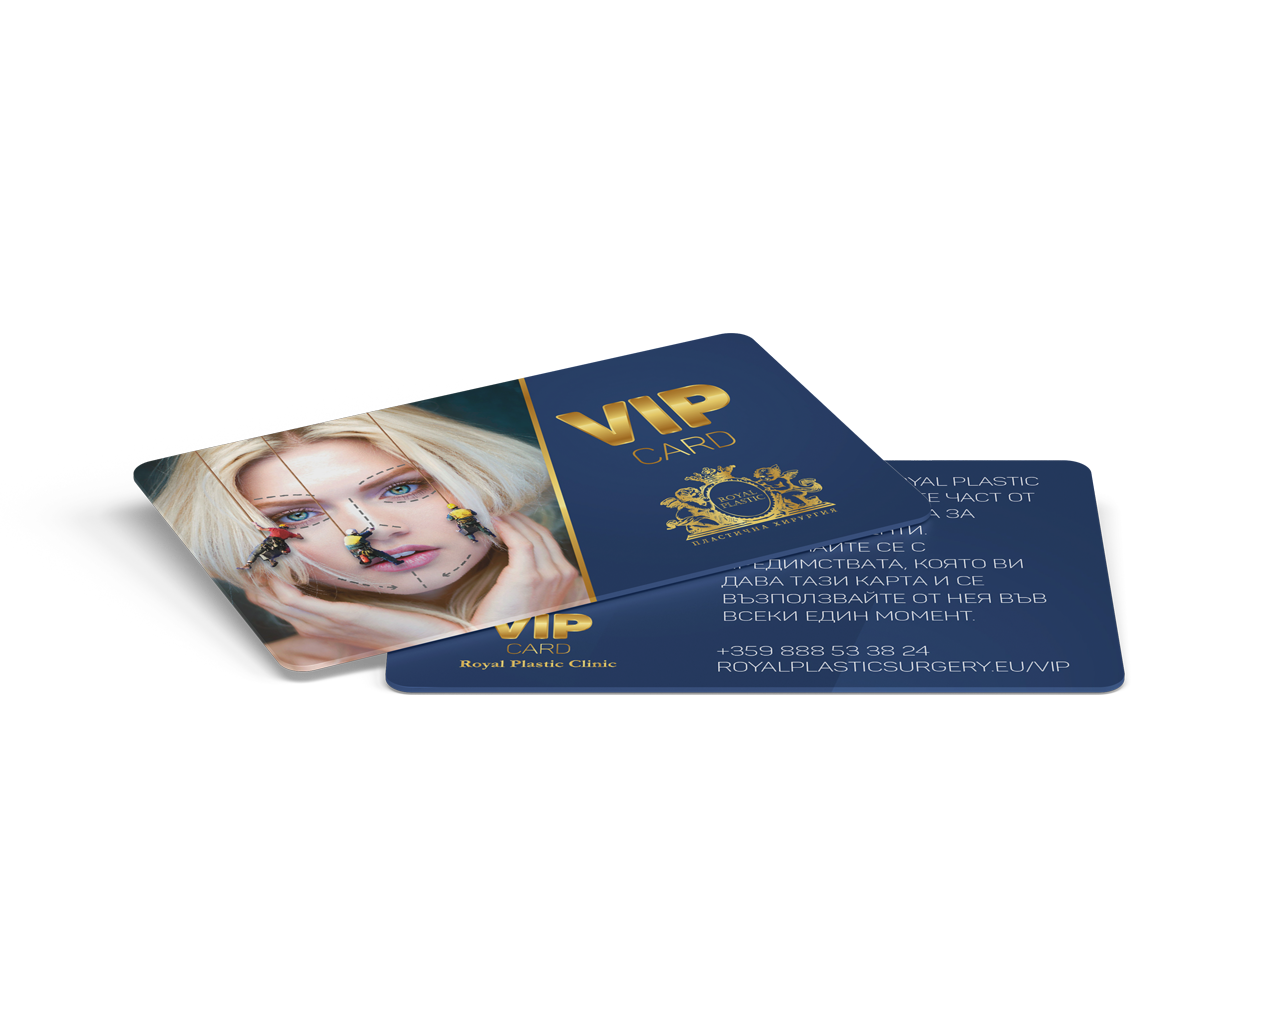 vip-card-royal-plastic-clinic–3